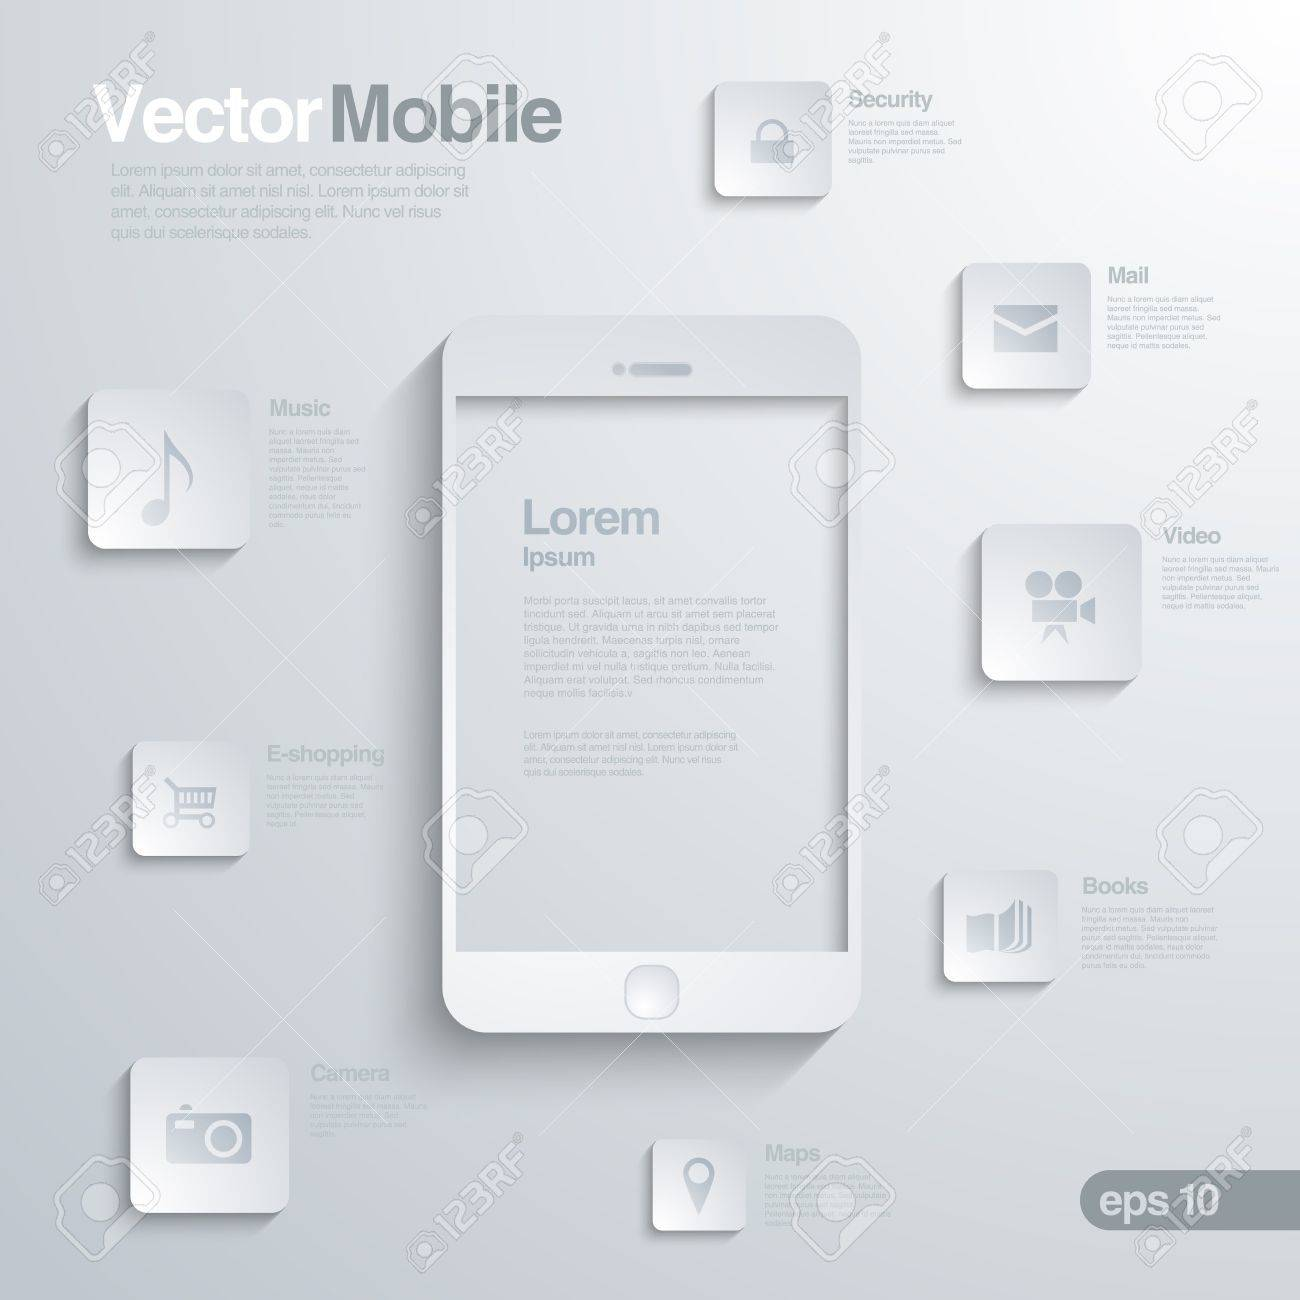 Mobile Smartphone with icon interface. Infographics. Elegant design concept of mobile technology. Stock Vector - 19089915